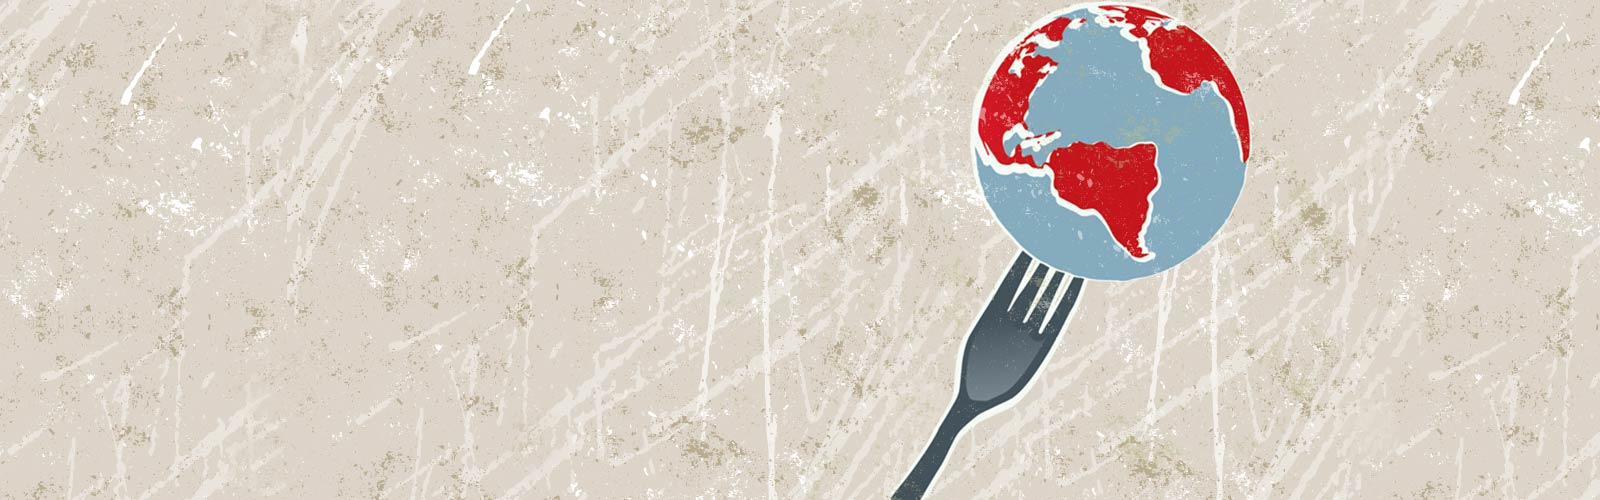 Planet on a fork - Food Systems in the Age of Climate Change